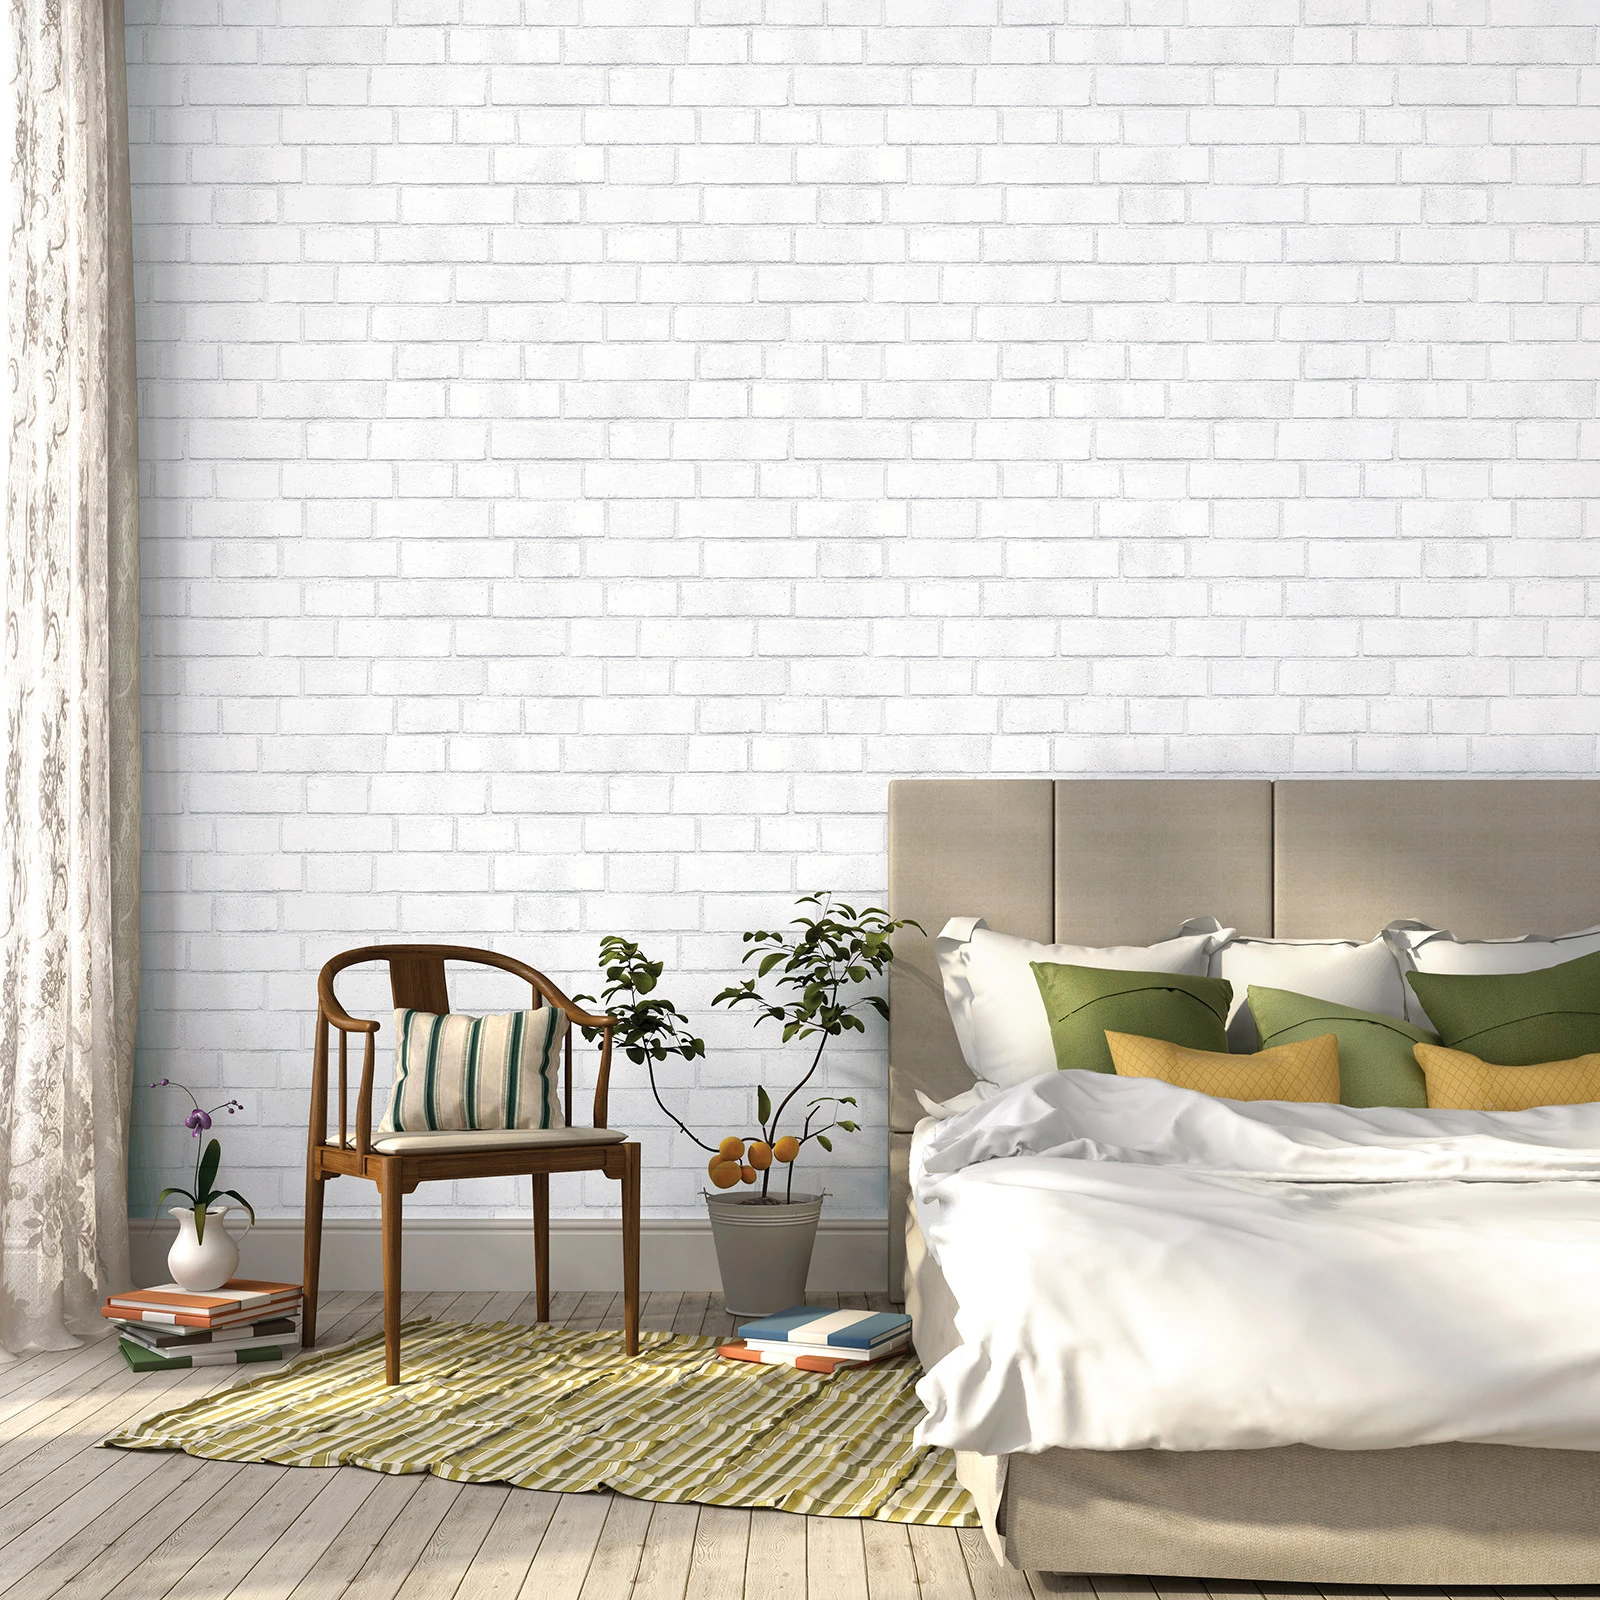 Best Textured Peel and Stick Wallpaper Designs That Will Transform Your Interior